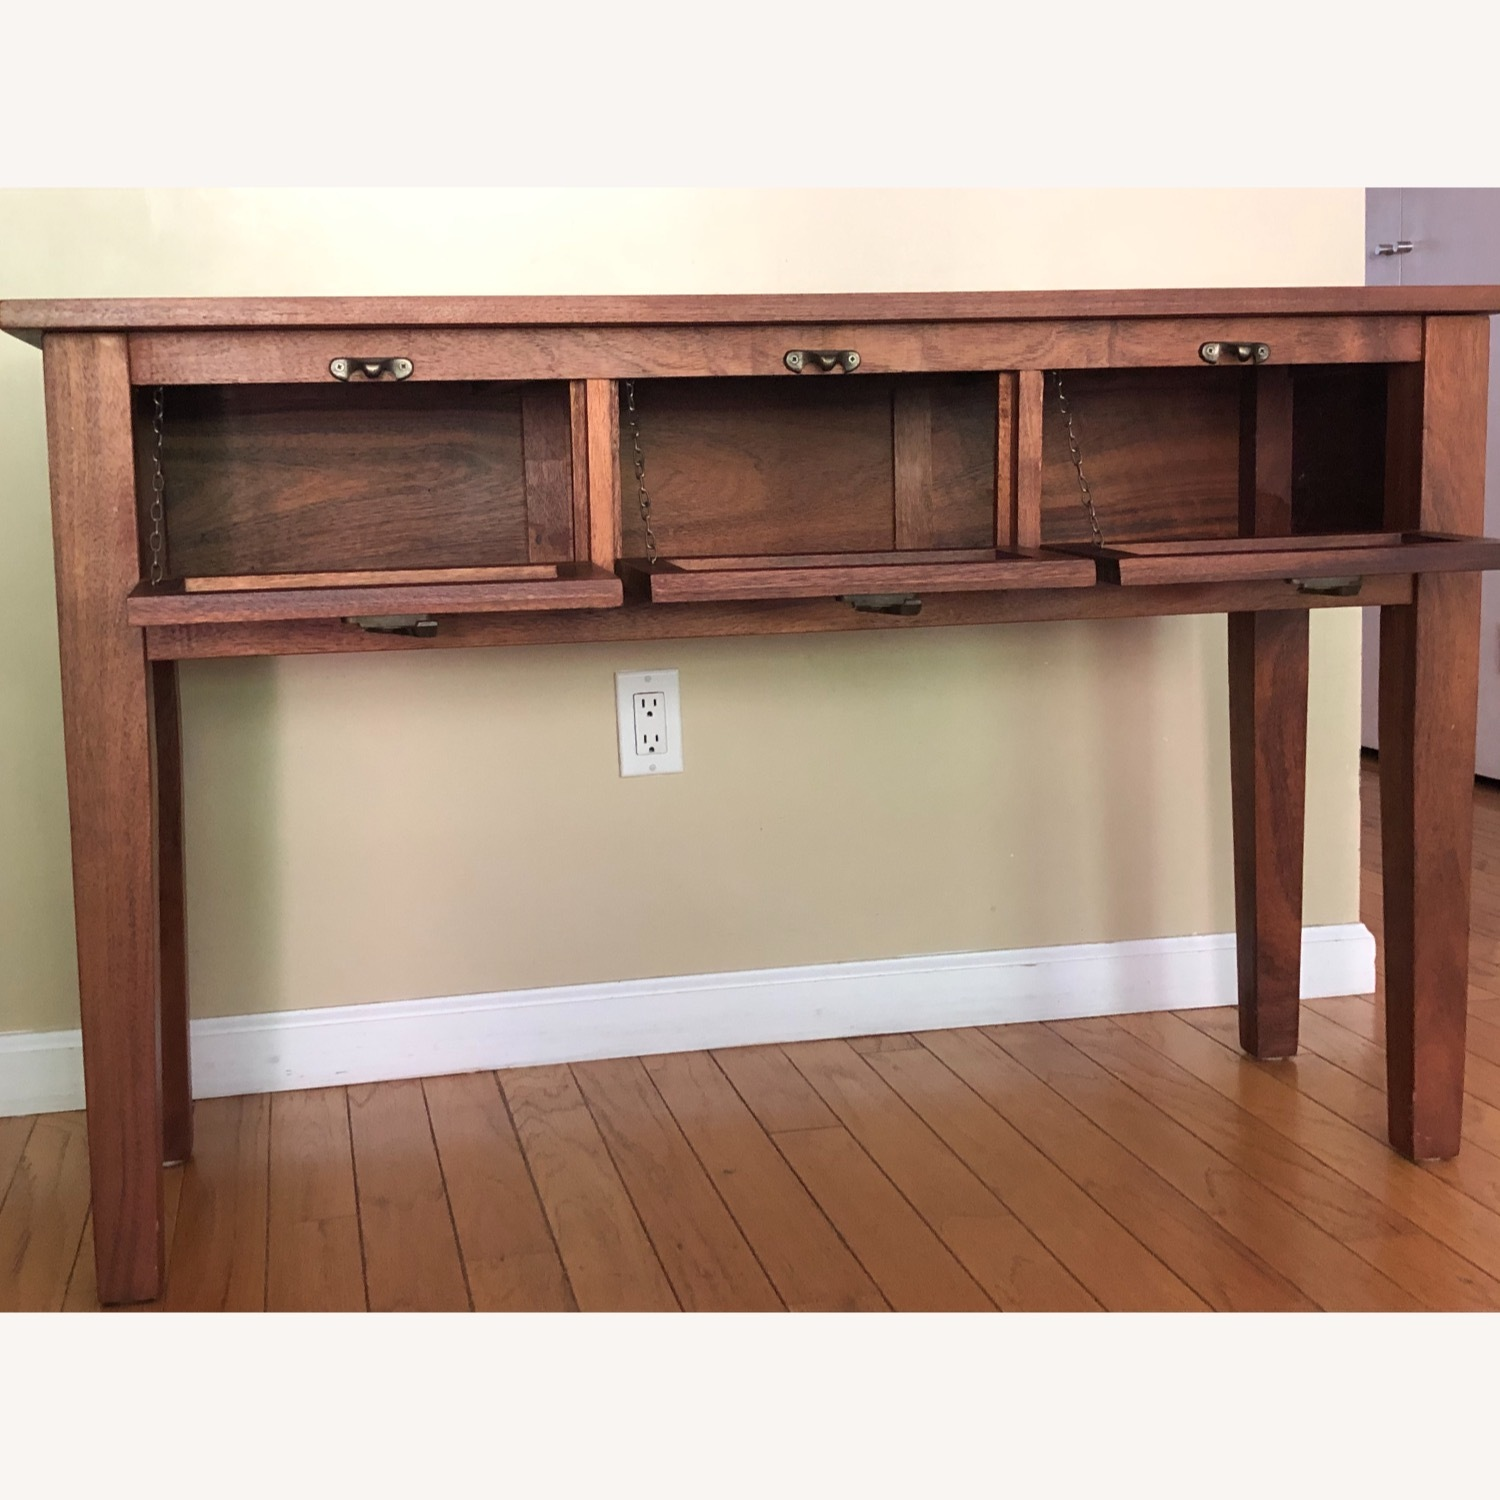 Pottery Barn Buffet / Sideboard with Glass Front Doors - image-2